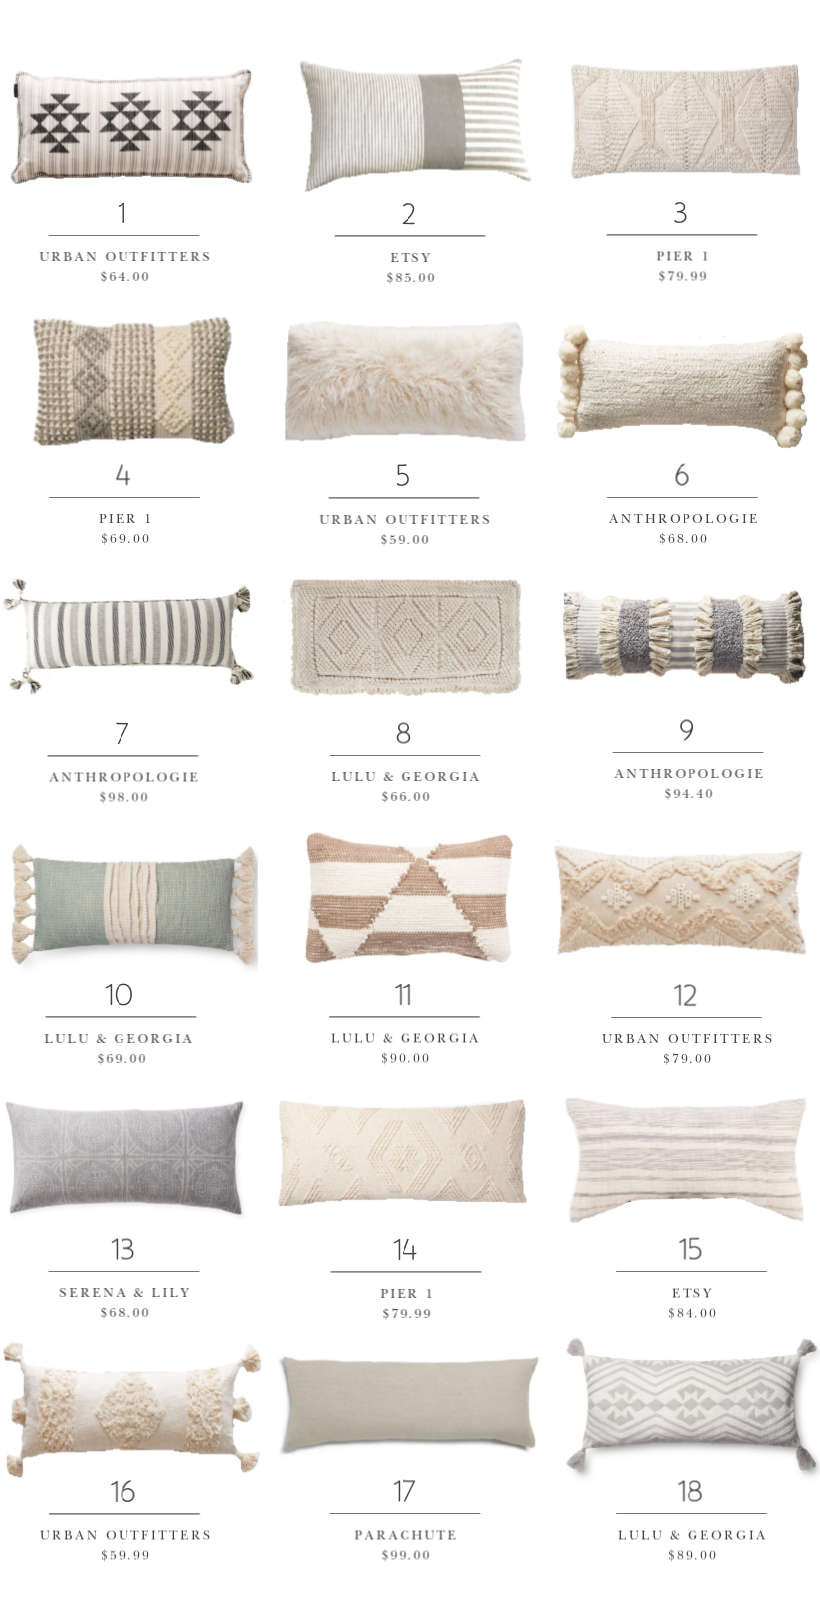 Home And Lifestyle Blogger Liz Fourez Shares Over 60 Options For Stylish Lumbar Pillows One Of Her Favorite Dec Throw Pillows Living Room Pillows Euro Pillows Throw pillows for bed decorating